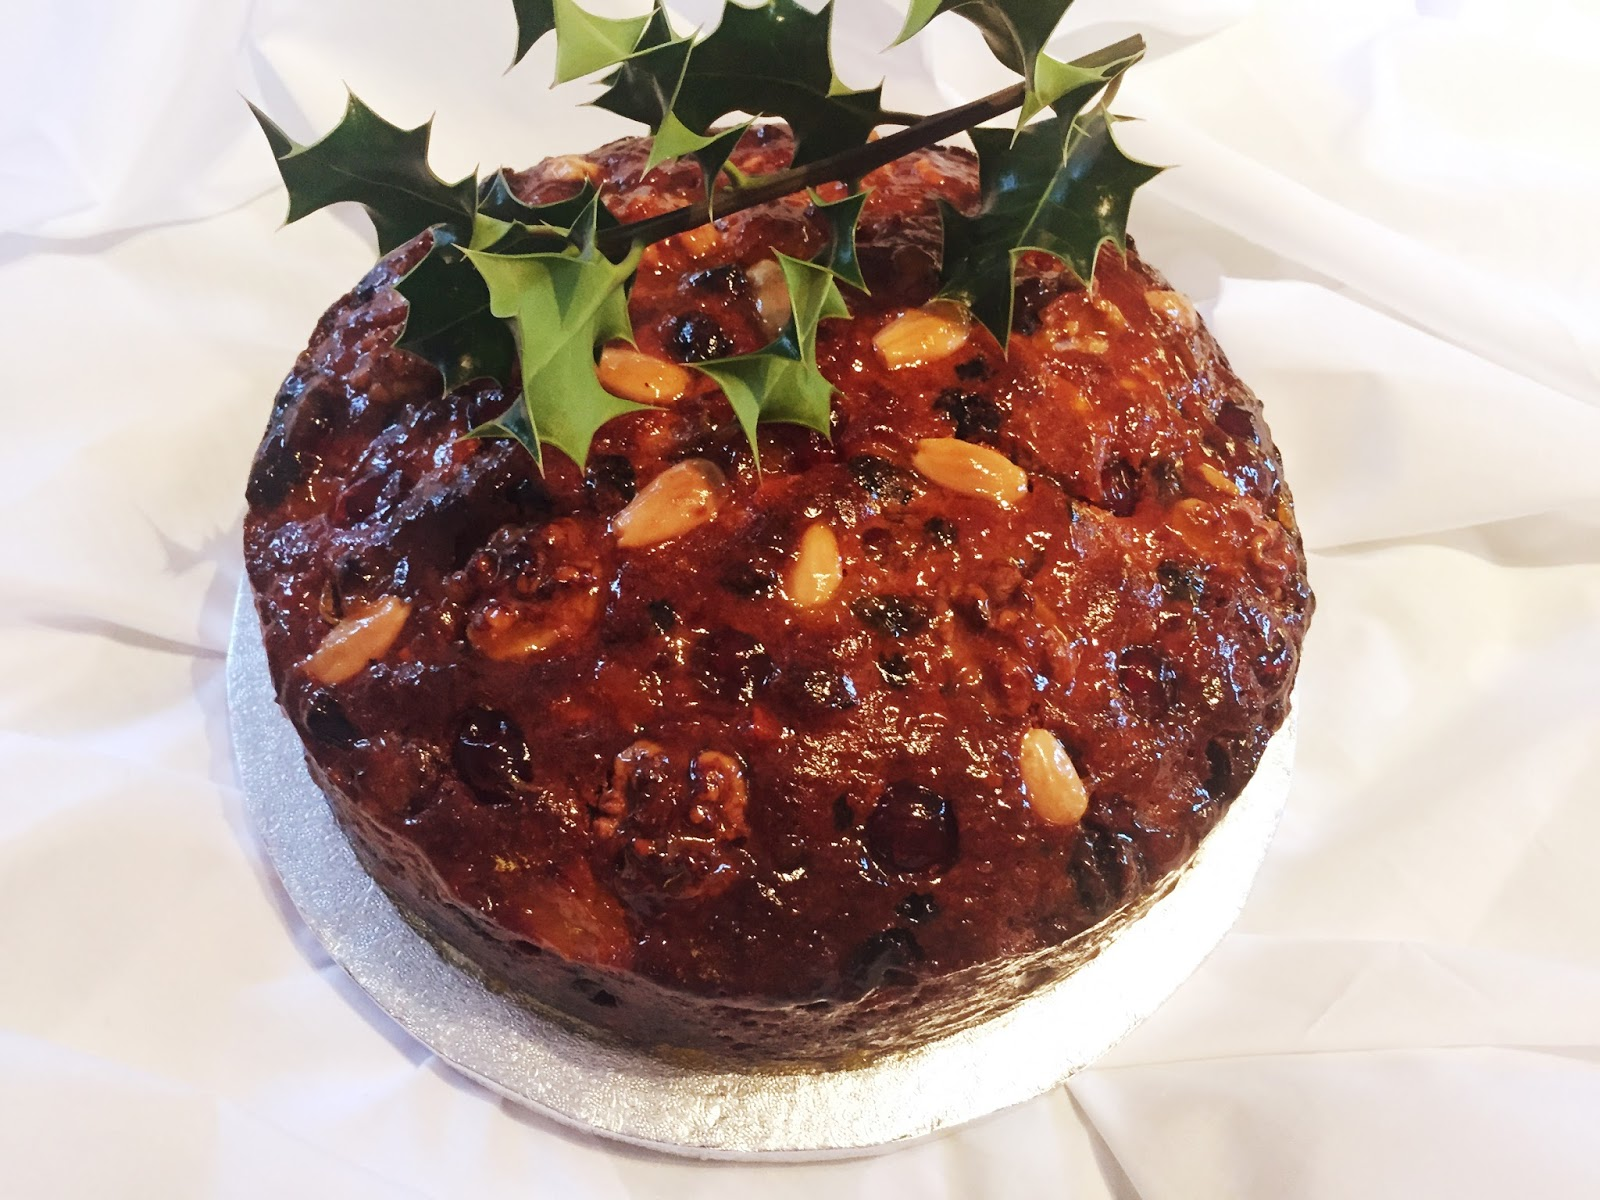 Baked By Rach Mary Berry S Christmas Genoa Cake